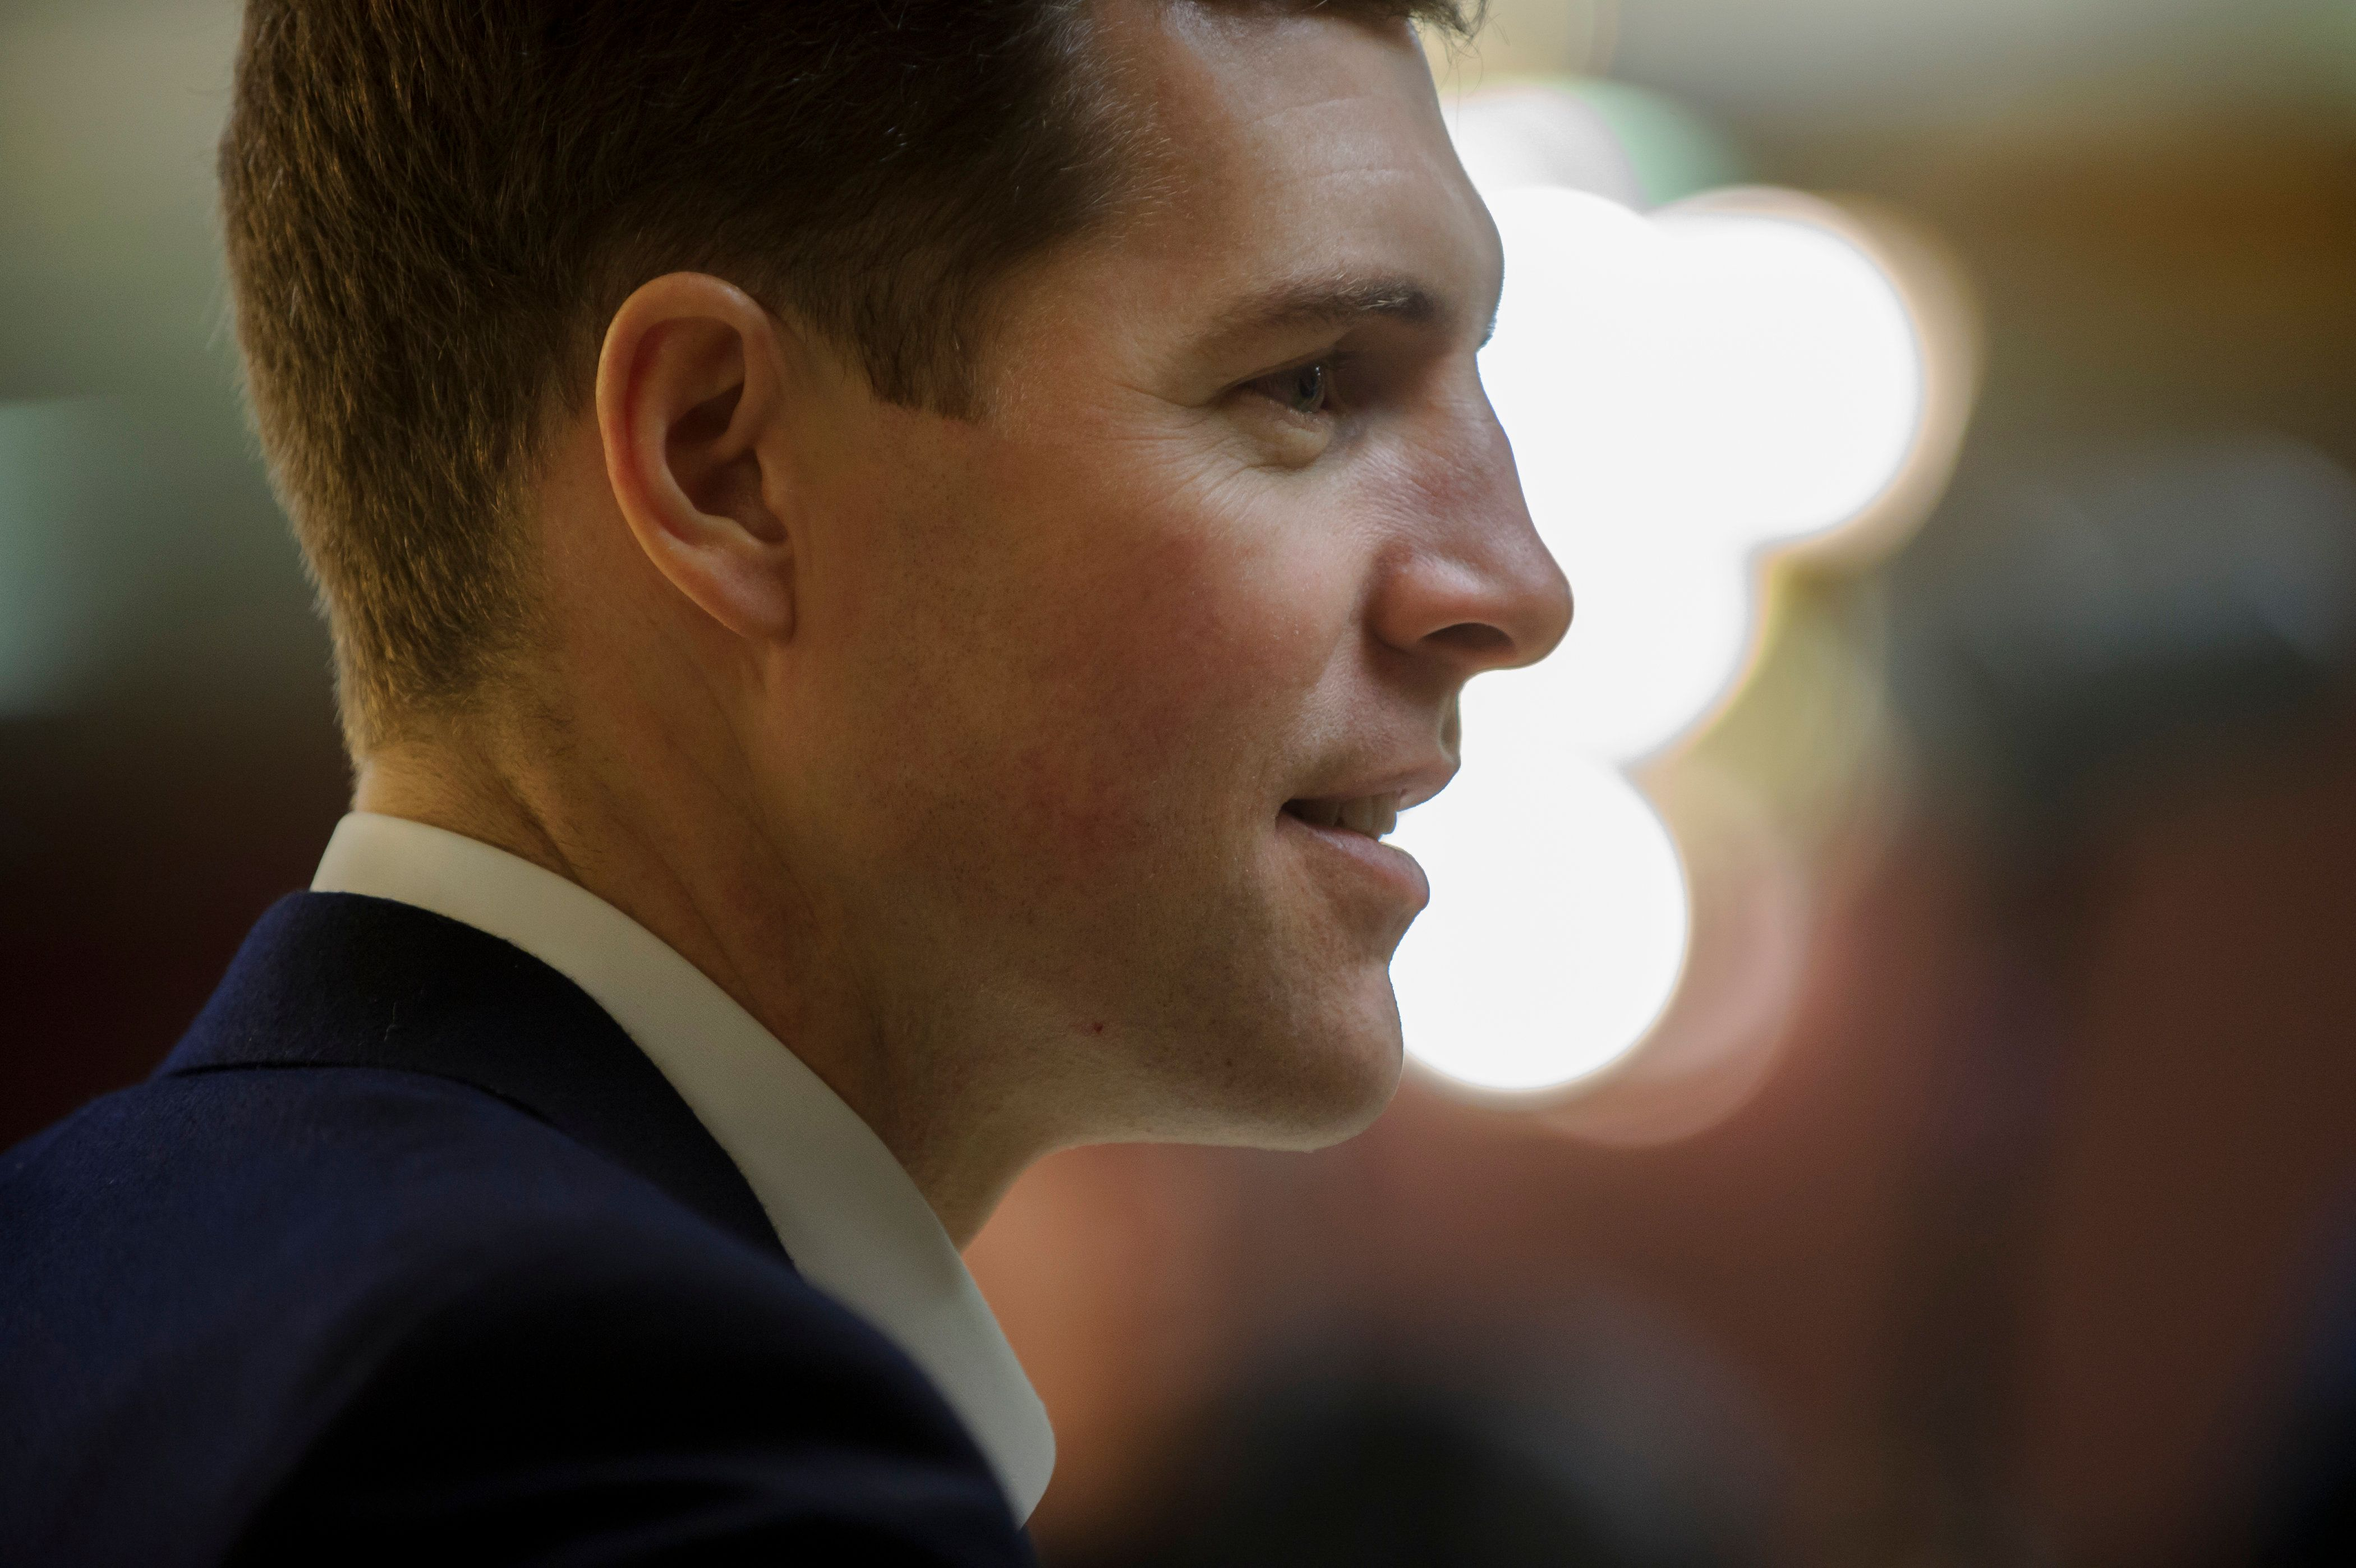 HOUSTON, PA - JANUARY 13: Democrat Conor Lamb, a former U.S. attorney and US Marine Corps veteran running to represent Pennsylvania's 18th congressional district, before a speech to an audience at the American Legion Post 902 on January 13, 2018 in Houston, Pennsylvania in the southwestern corner of the state. President Donald Trump plans to visit Pennsylvania's 18th Congressional District next week in a bid to help Lamb's republican opponent, Rick Saccone. (Photo by Jeff Swensen/Getty Images)